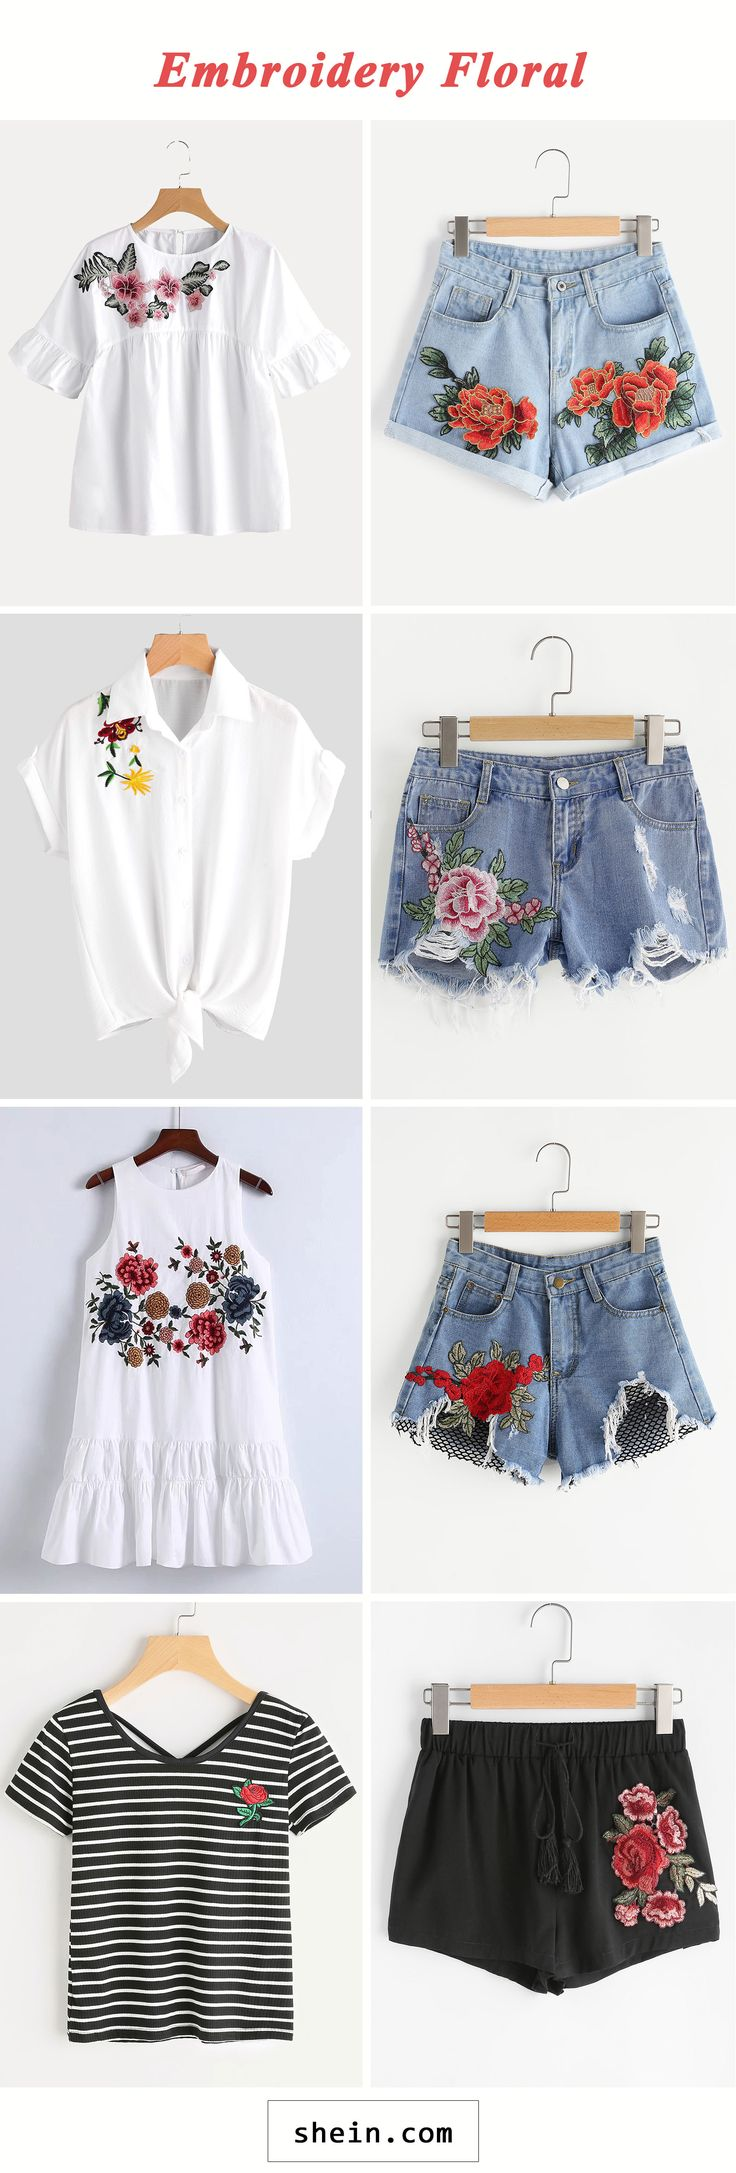 Embroidery Floral